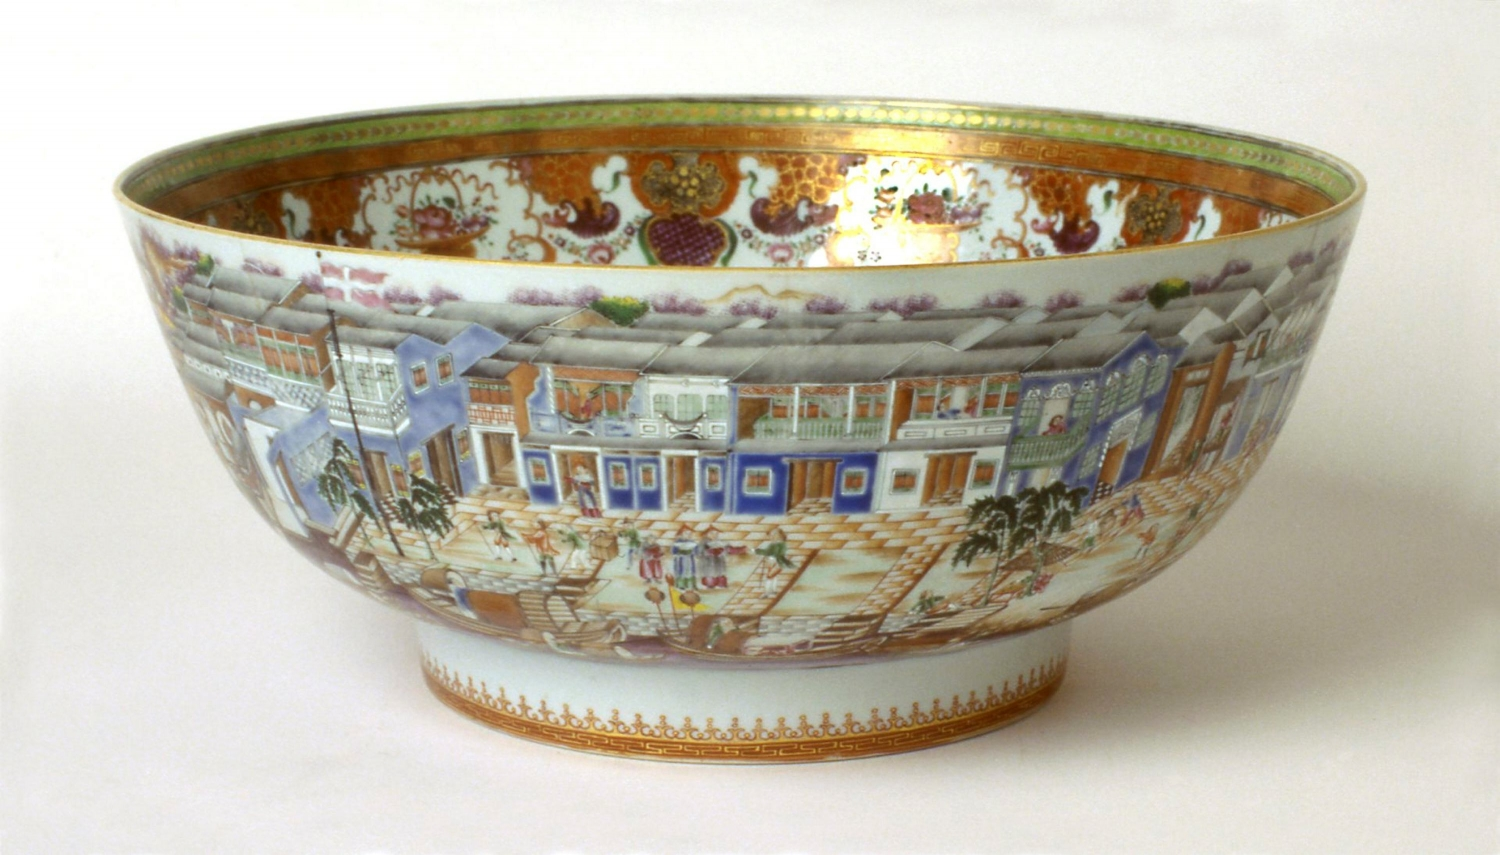 A Chinese Export 'Hong' punch bowl made in Jingdezhen, Jiangxi province, China, for a British or European market, and sold through Canton (Guangzhou), circa 1780-85.